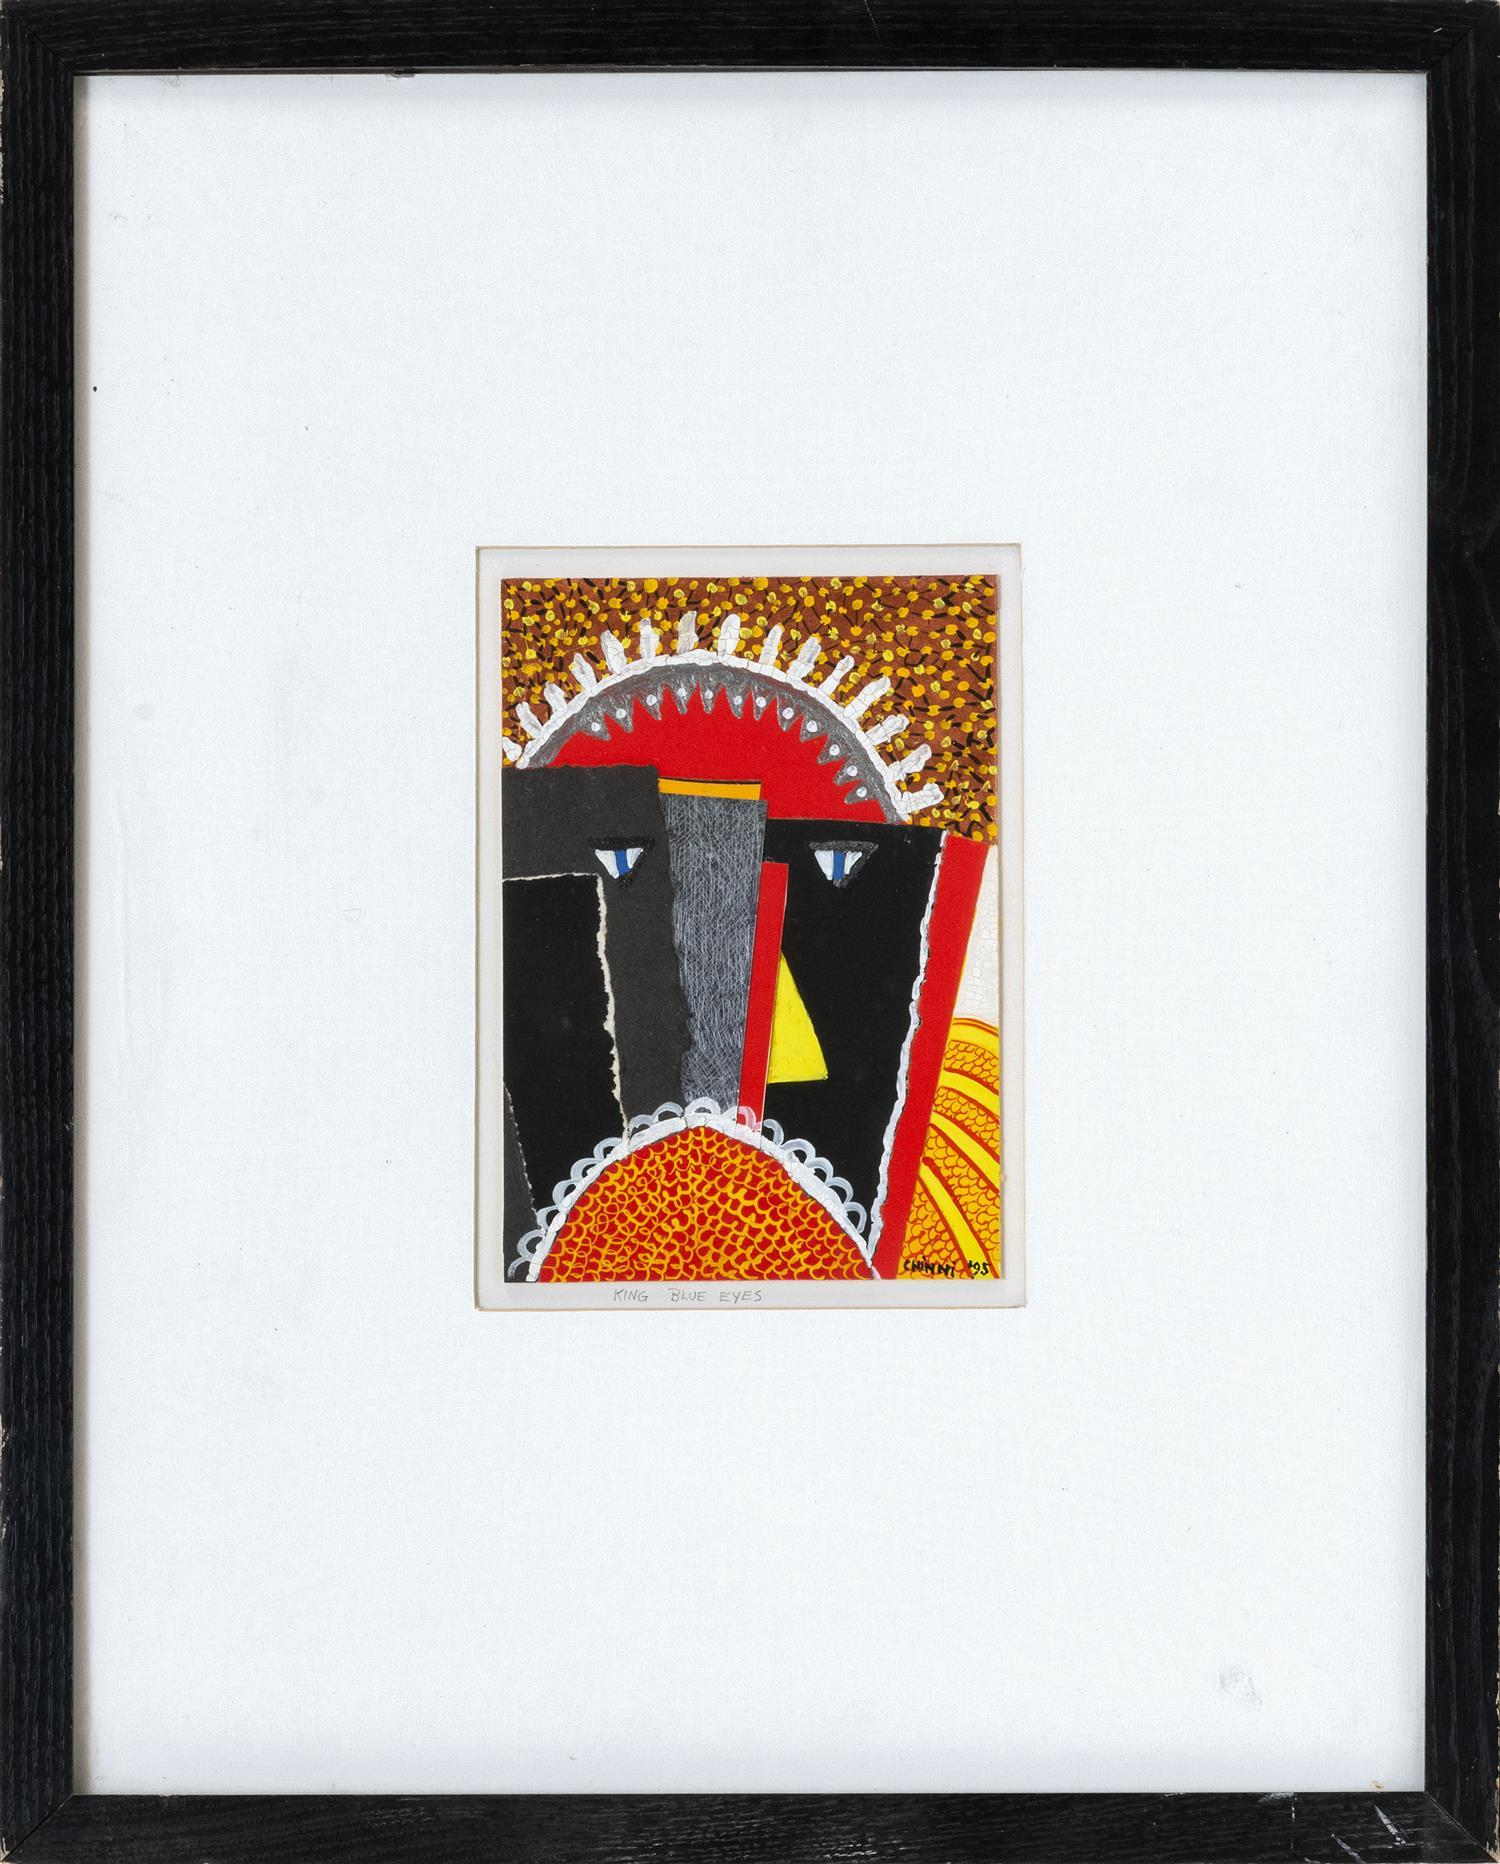 """PETER ANTHONY CHINNI, New York, b. 1928, """"King Blue Eyes""""., Mixed media collage, 7.5"""" x 5.5"""". Framed 19"""" x 15""""."""